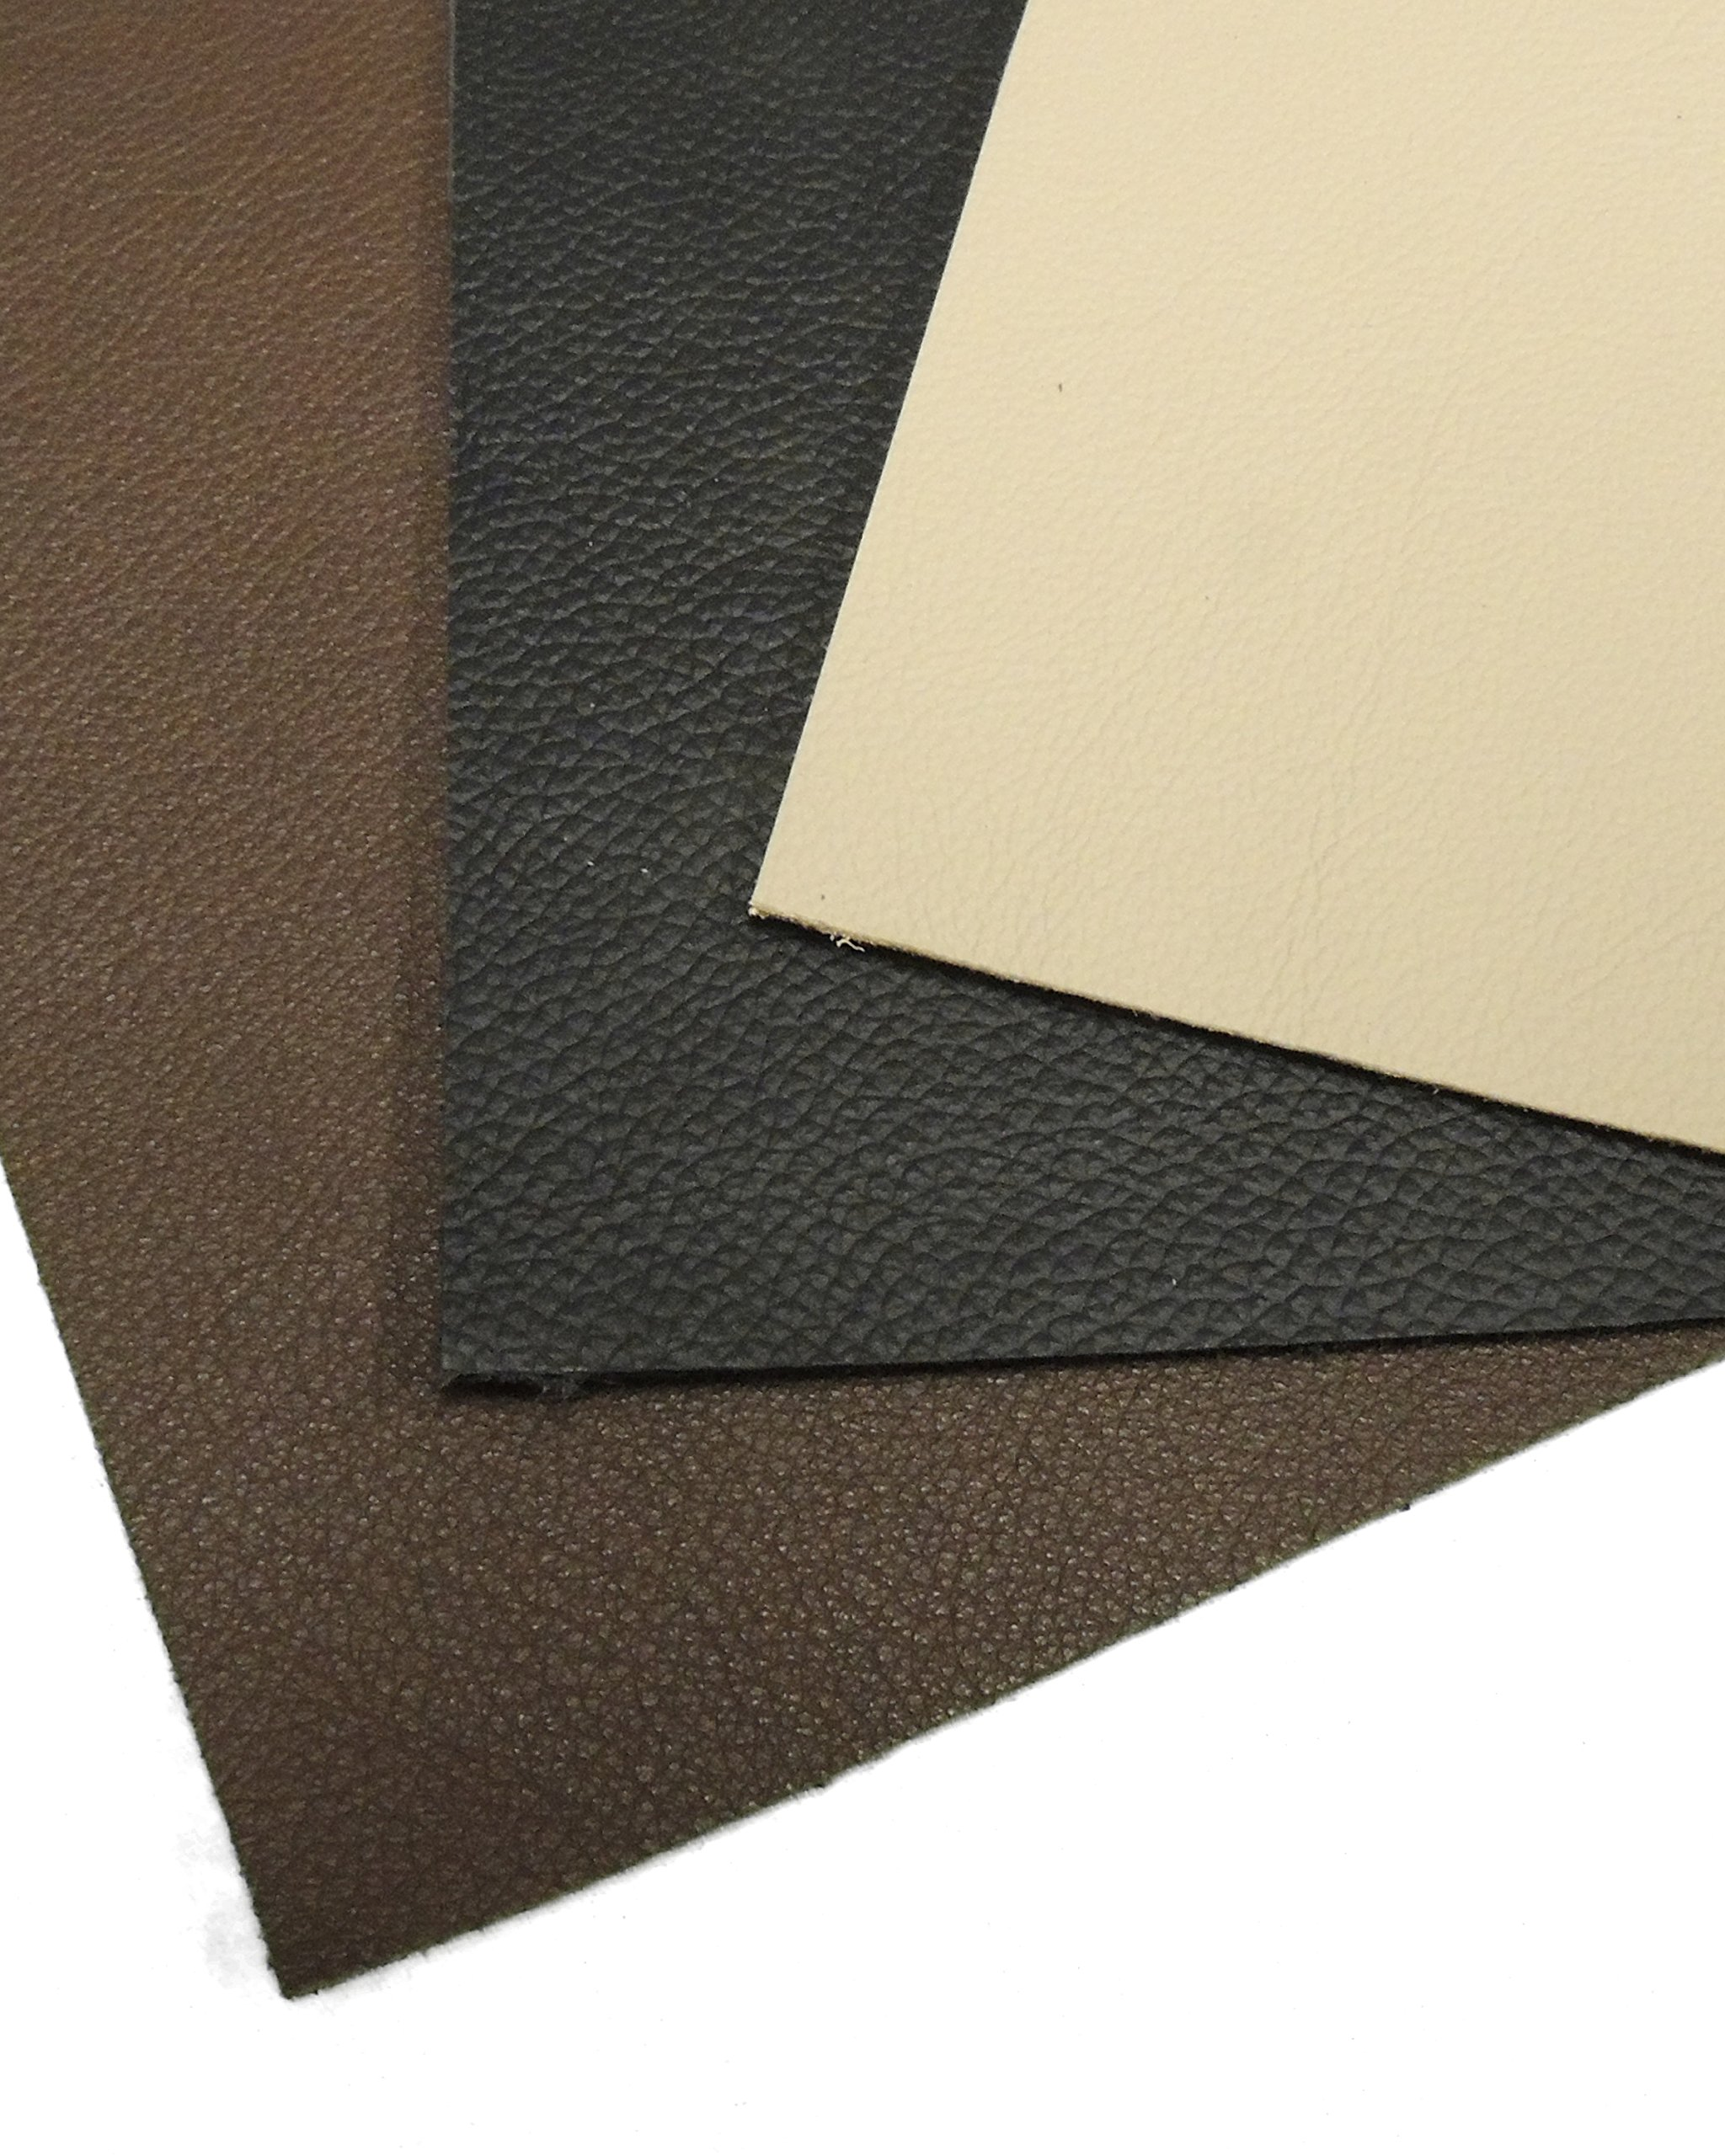 ALL PURPOSE ADHESIVE BACKED GENUINE LEATHER SHEET 8.5'' X 11'' (AVAILABLE IN 3 COLORS) (BLACK)